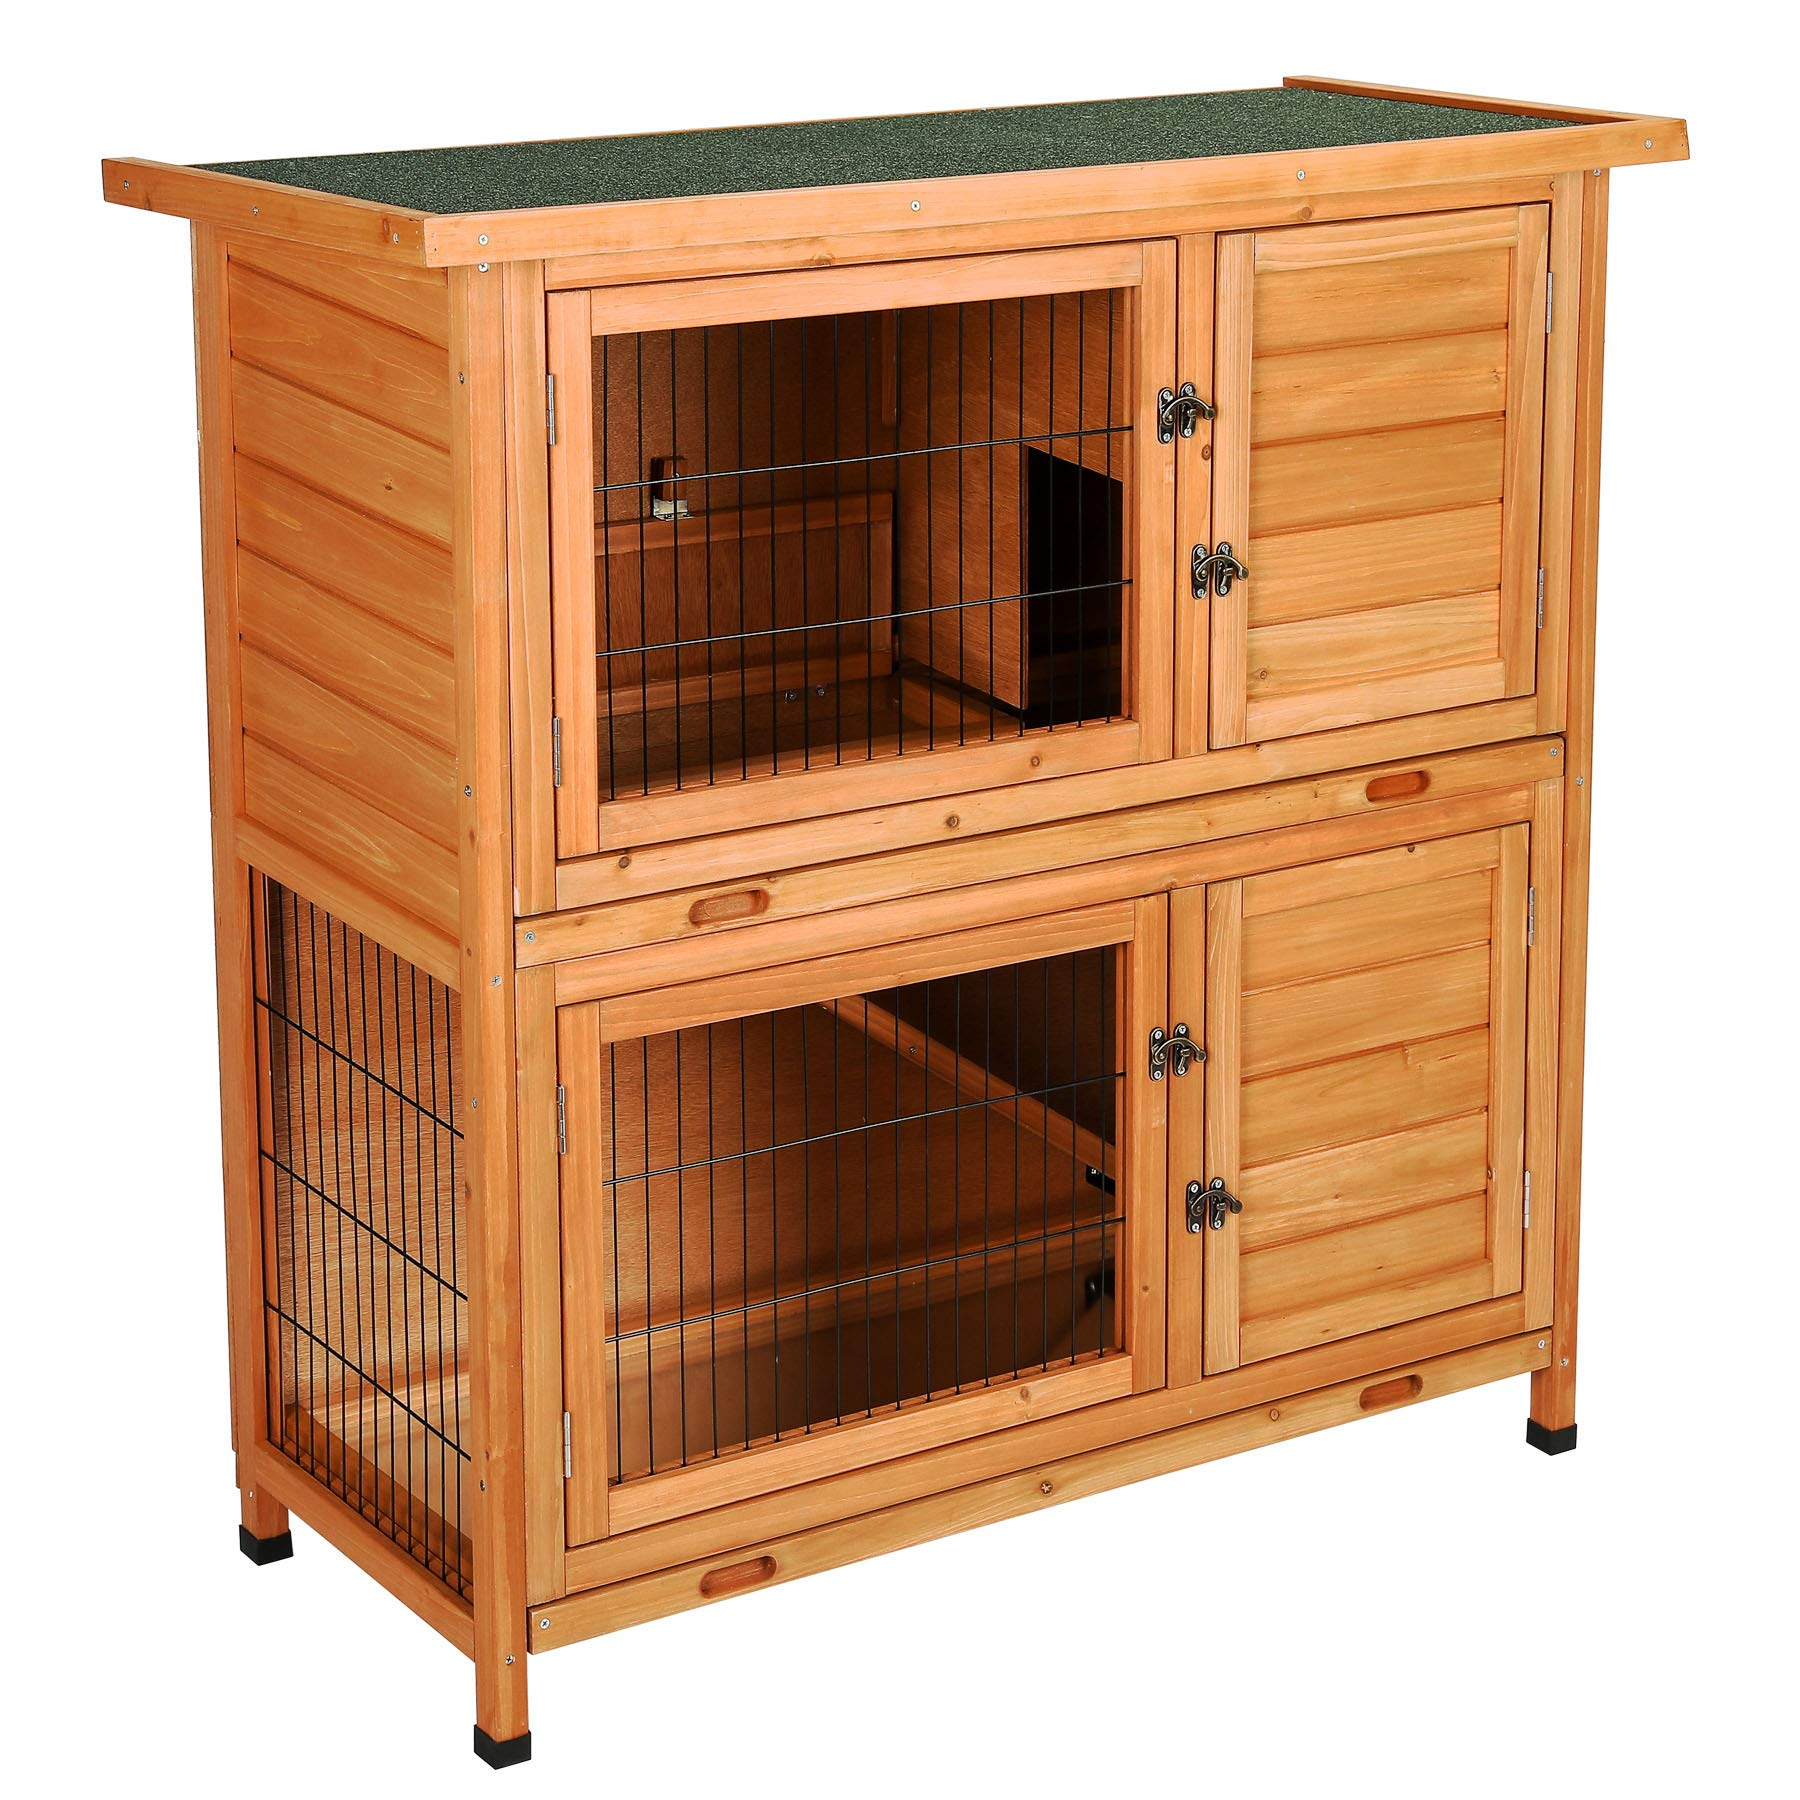 CO-Z 2 Story Outdoor Wooden Bunny Cage Rabbit Hutch Guinea Pig House in Nature Color with Ladder for Small Animals by CO-Z (Image #2)